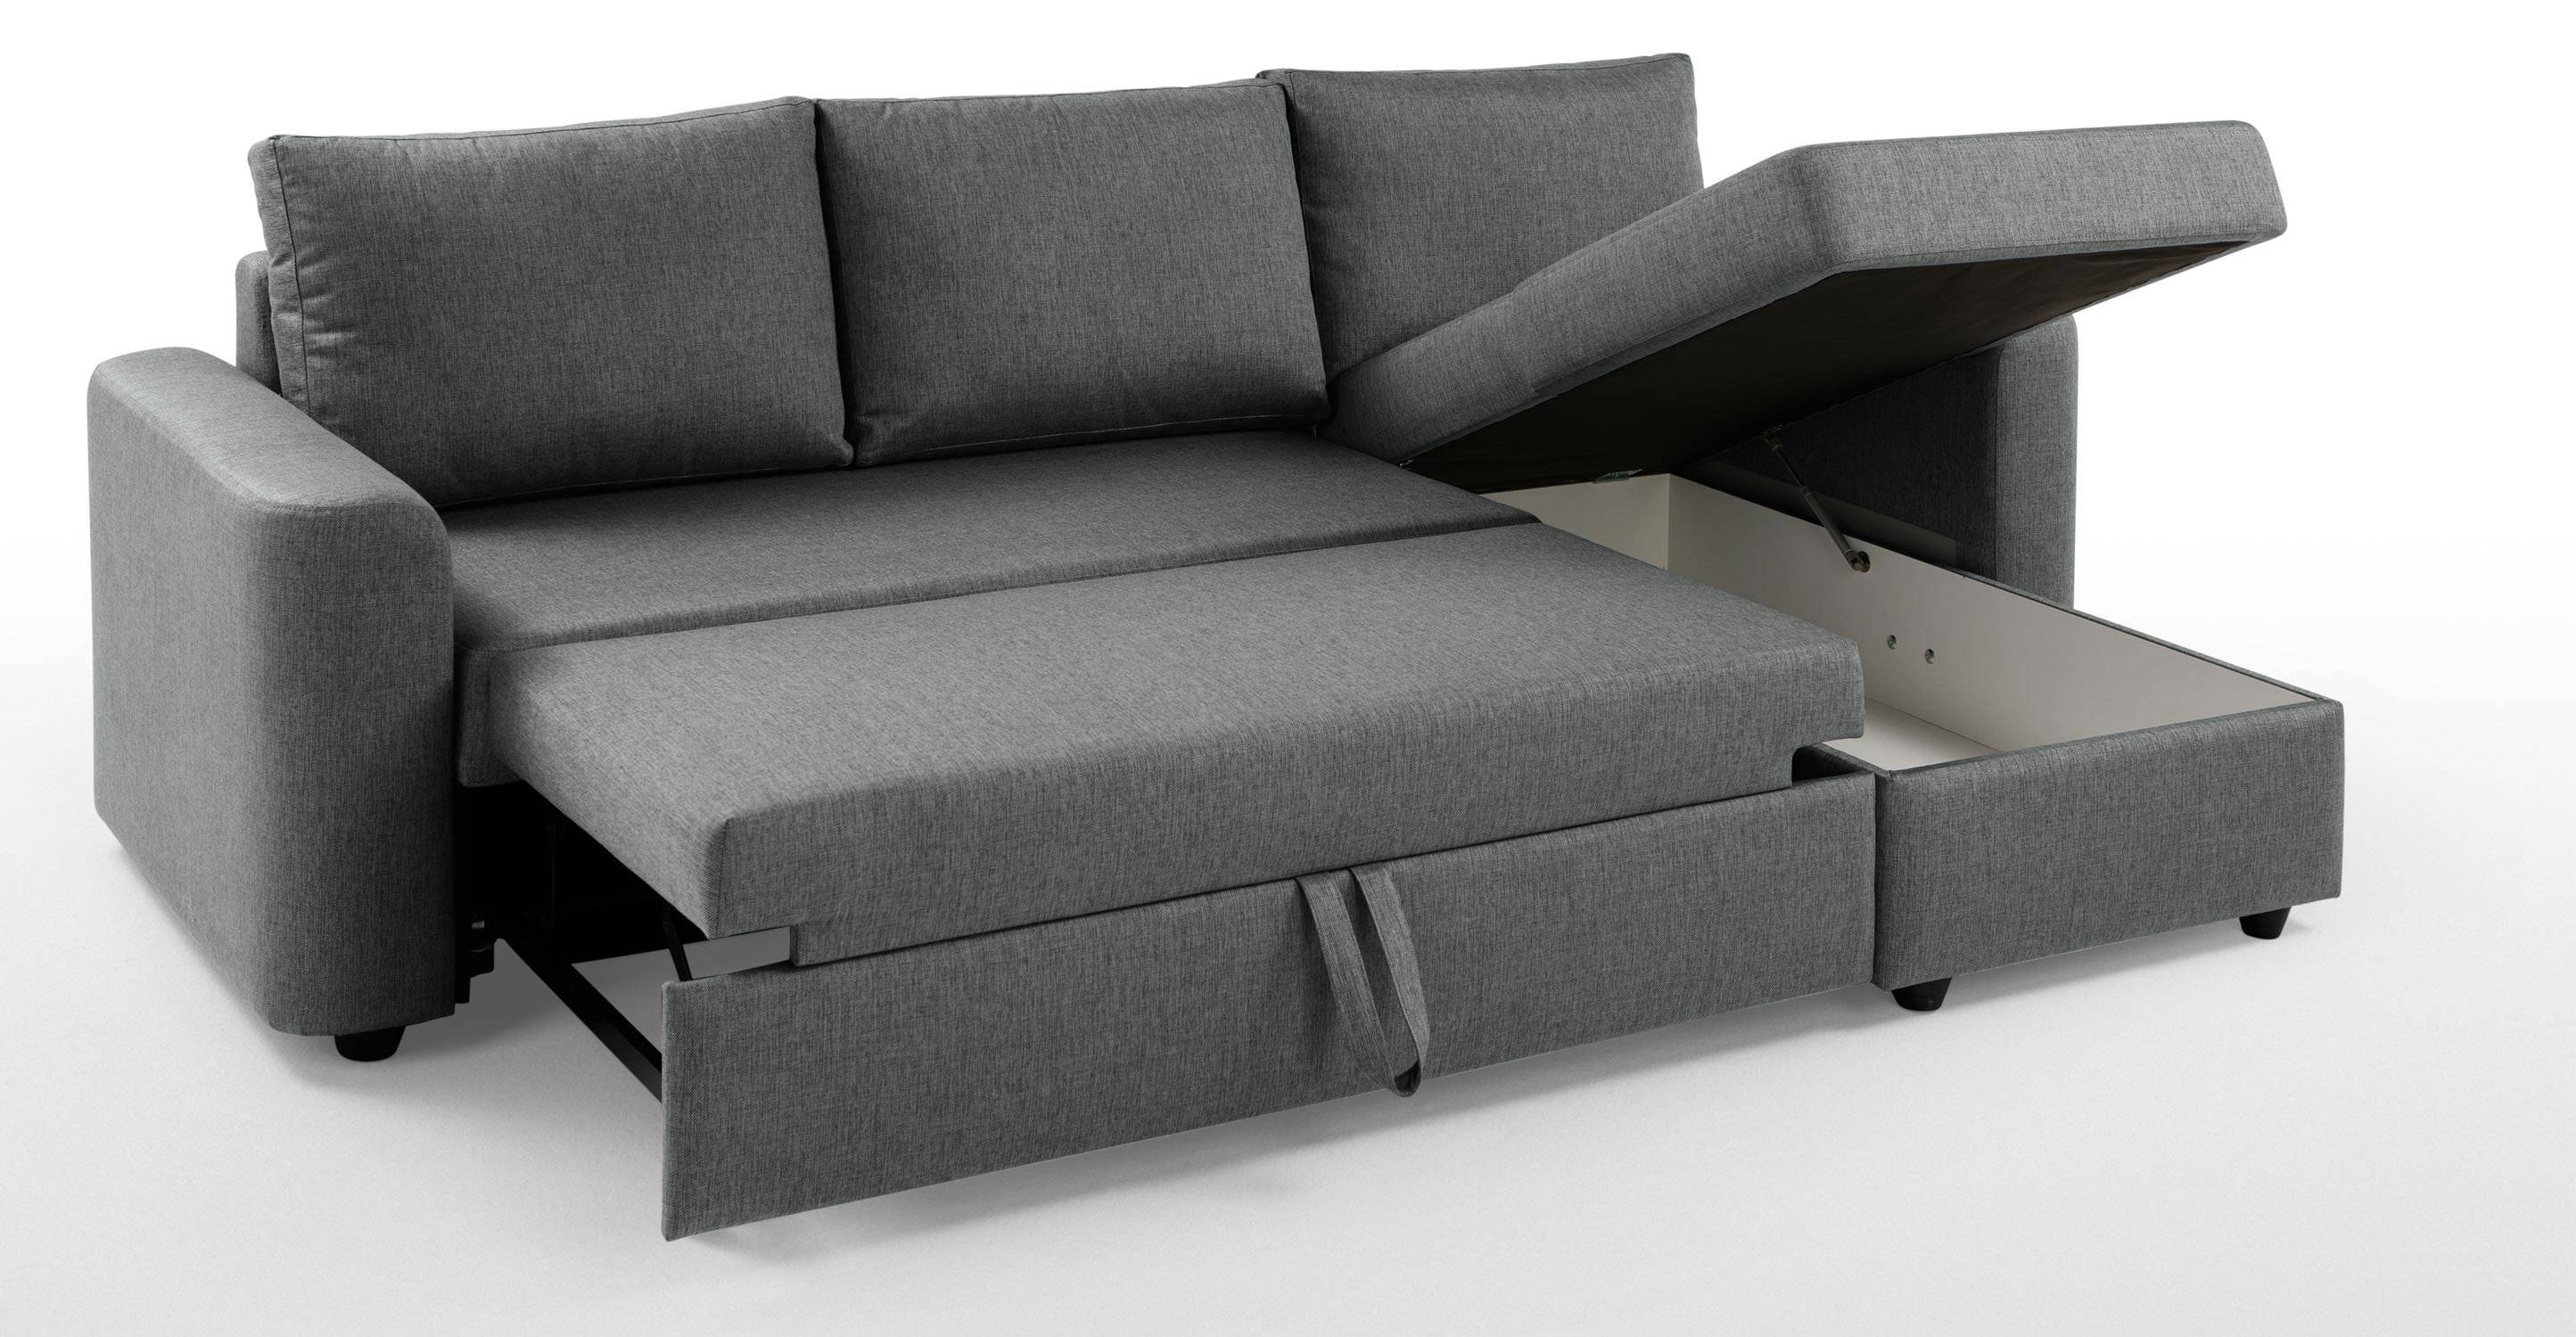 Corner Sofa Bed With Storage London | Centerfieldbar inside Sofa Beds With Storage Chaise (Image 3 of 15)